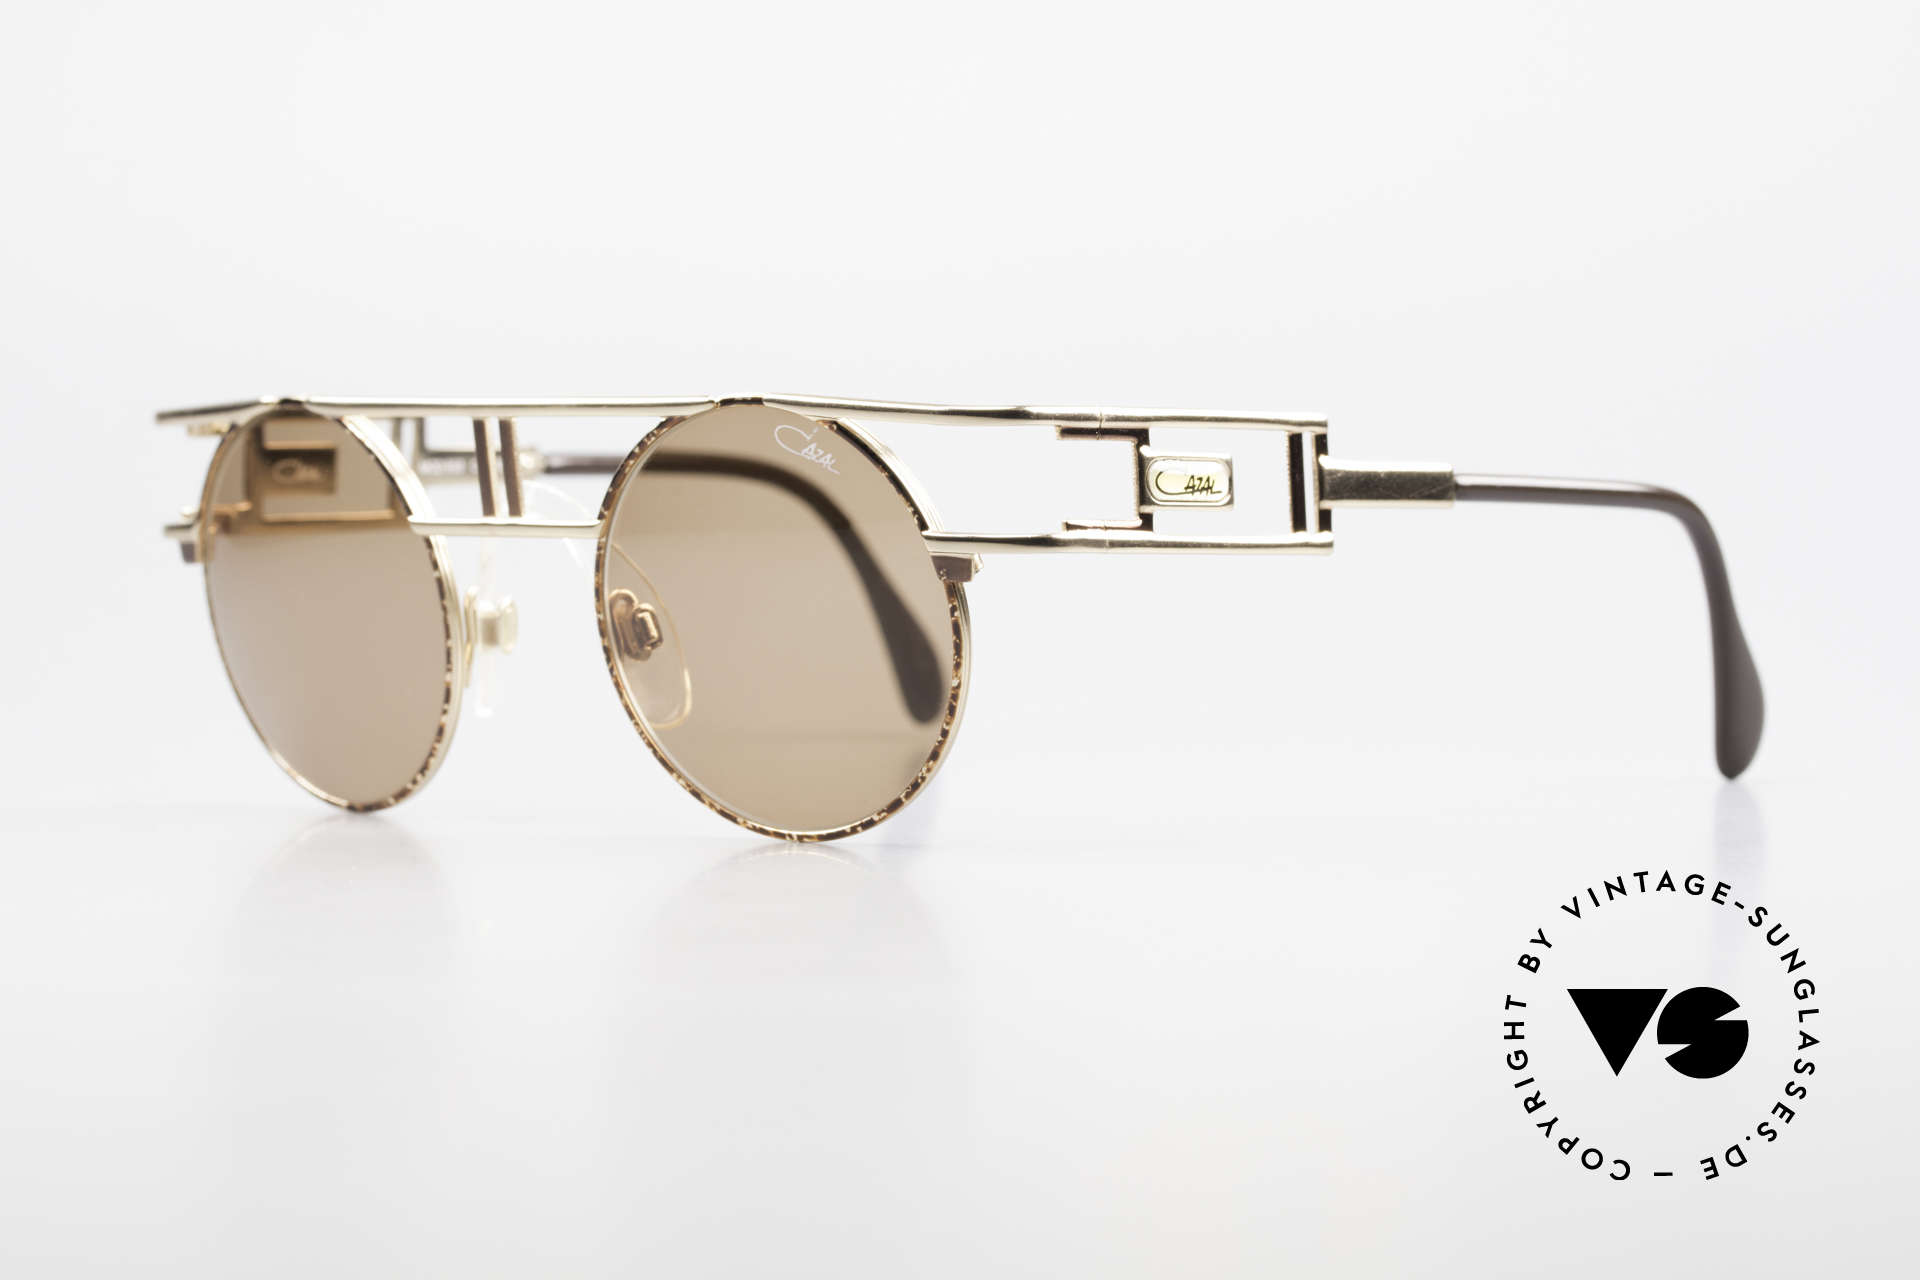 Cazal 958 90's CAzal Celebrity Sunglasses, 958 = also seen on Beyoncé (in private, NYC 2012), Made for Men and Women